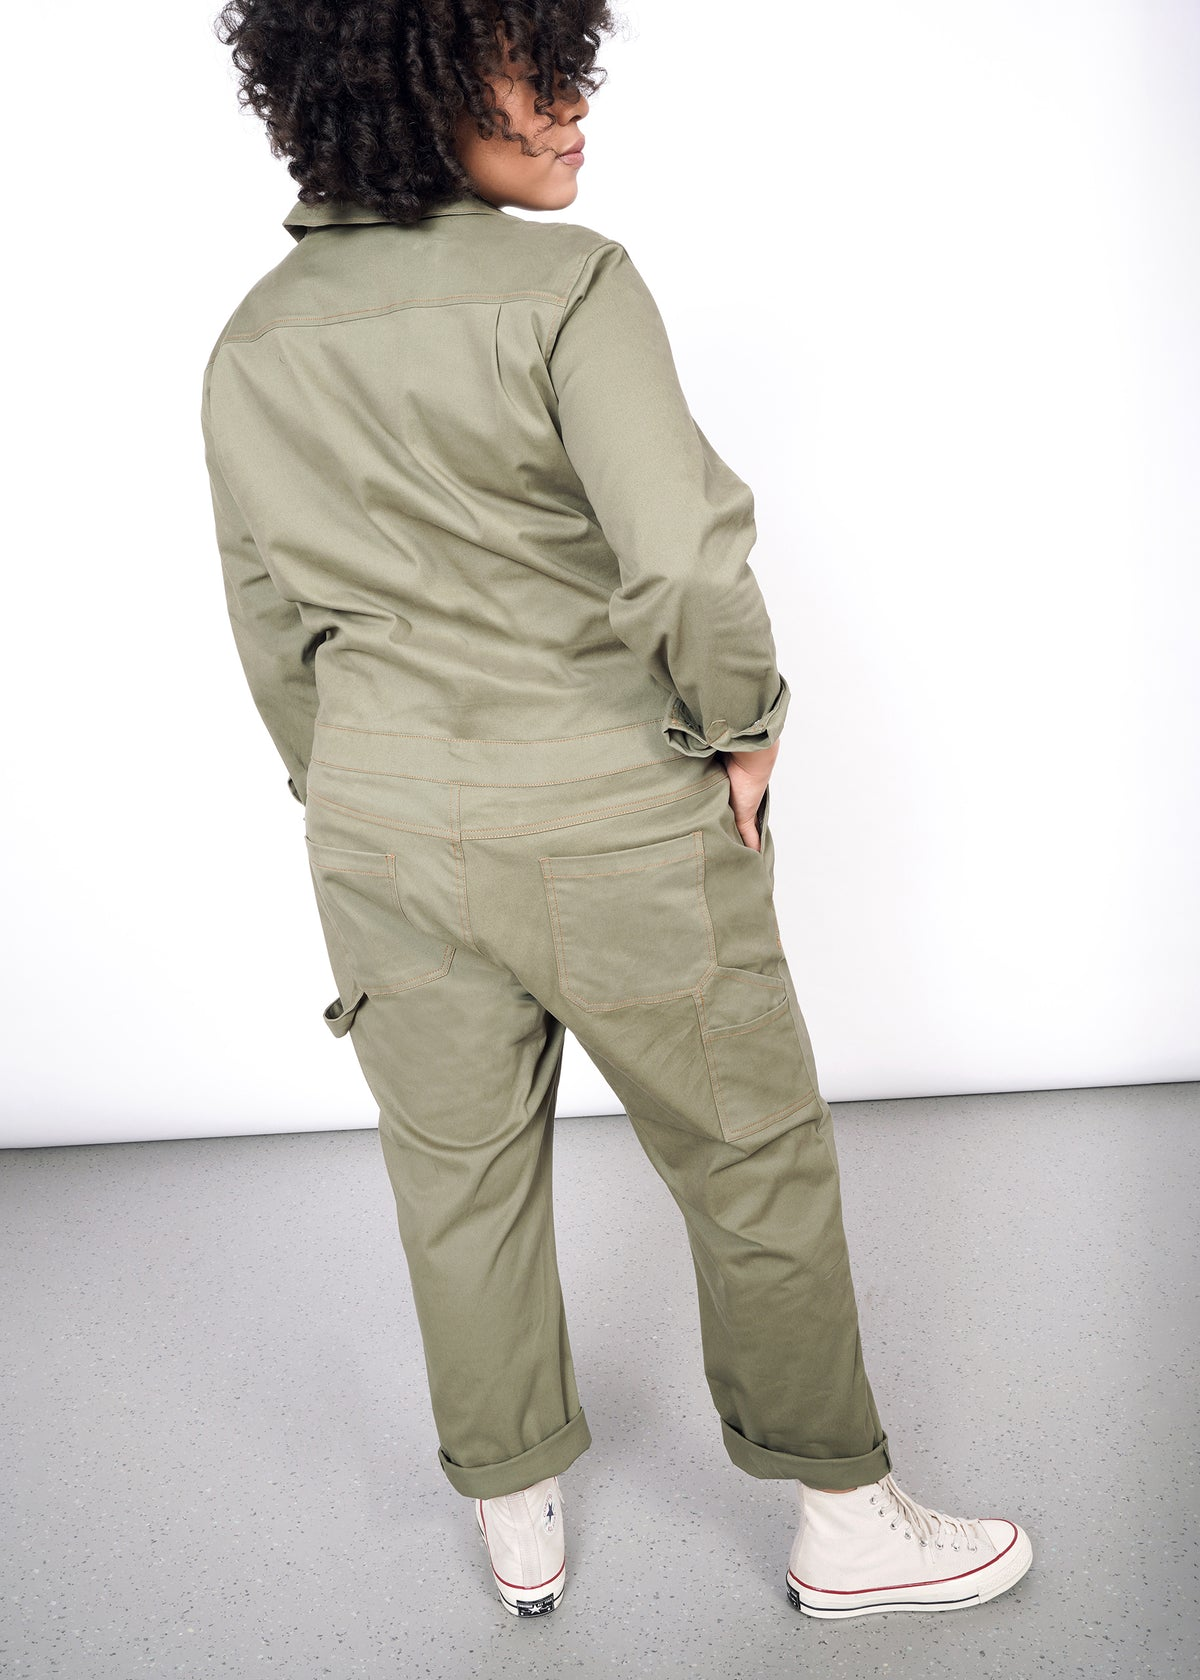 Model with back turned, wearing olive coveralls. Shows back pockets, hammer loop, and side leg pocket